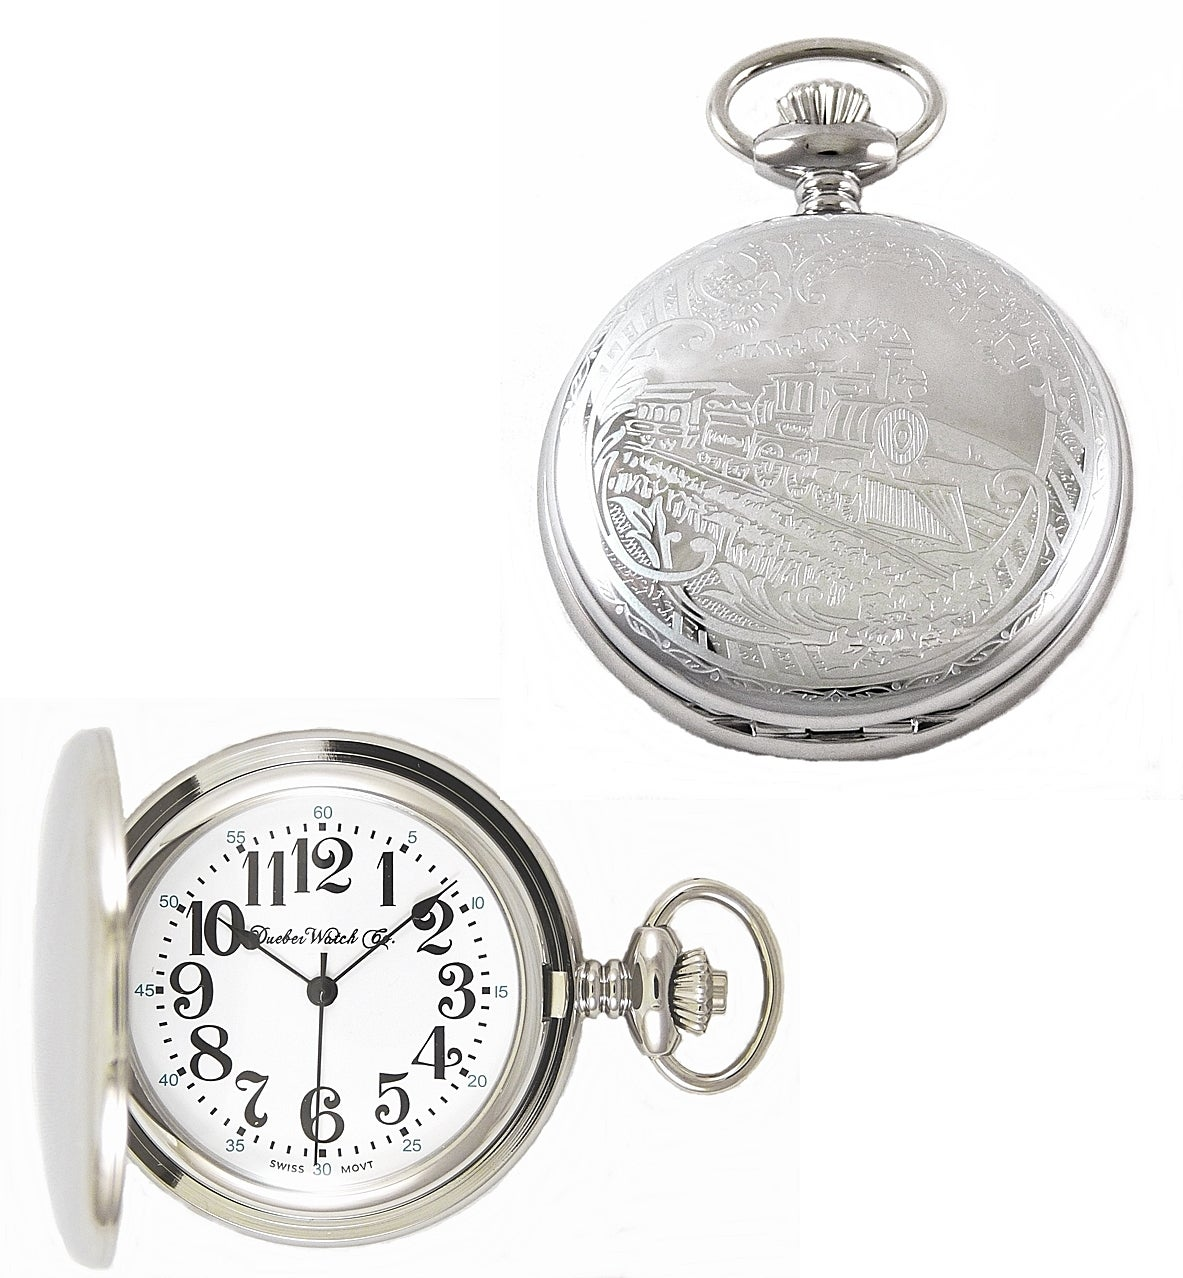 Image of Dueber Pocket Watch, Swiss Made Movement, Chrome Plated Steel Case with Locomotive 332-310